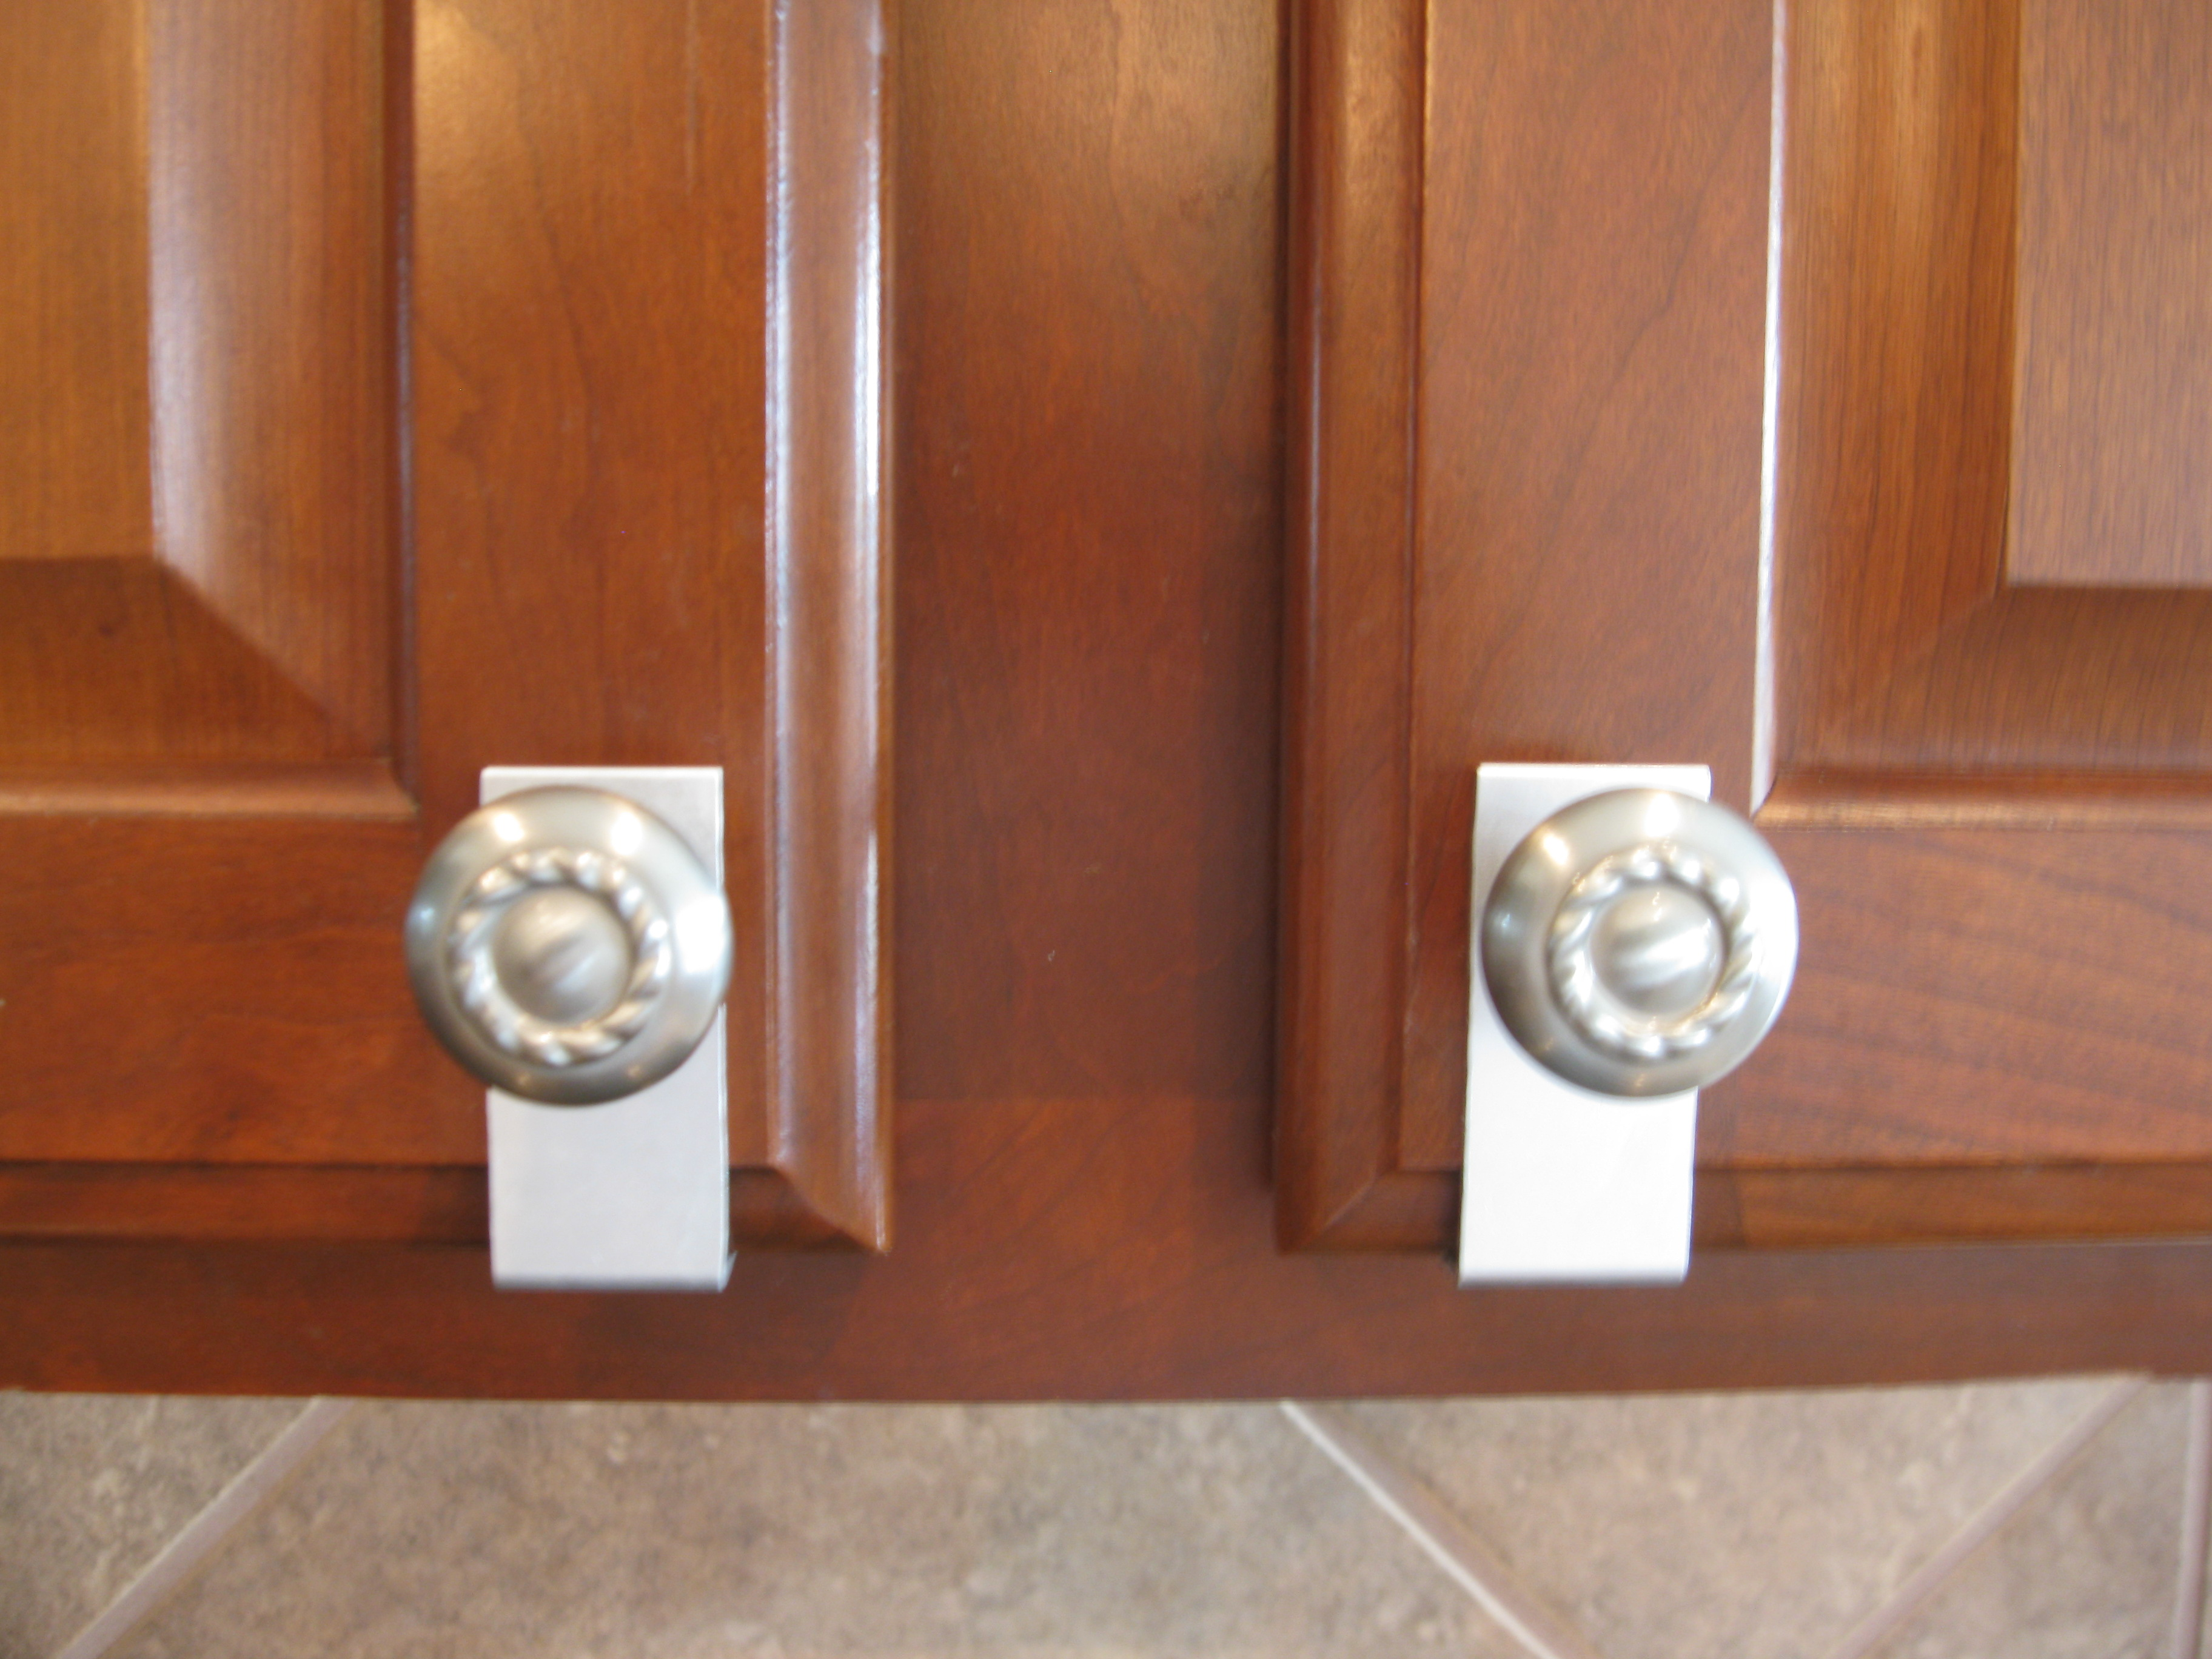 where to put knobs on cabinet doors photo - 6